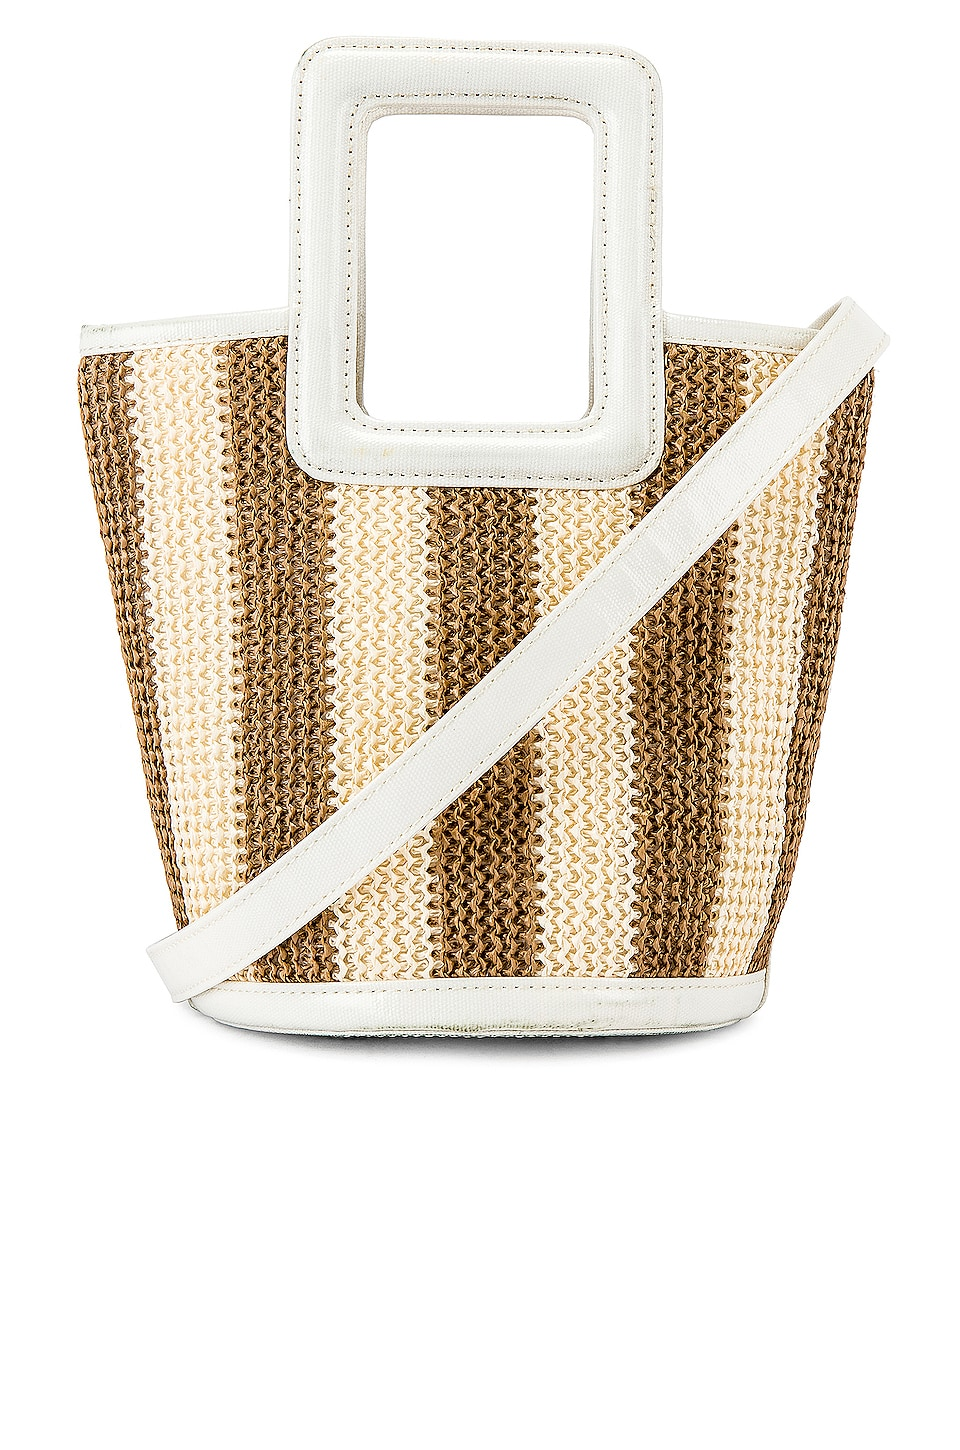 Solid & Striped Pookie Crochet Tote in Sand & White Stripe